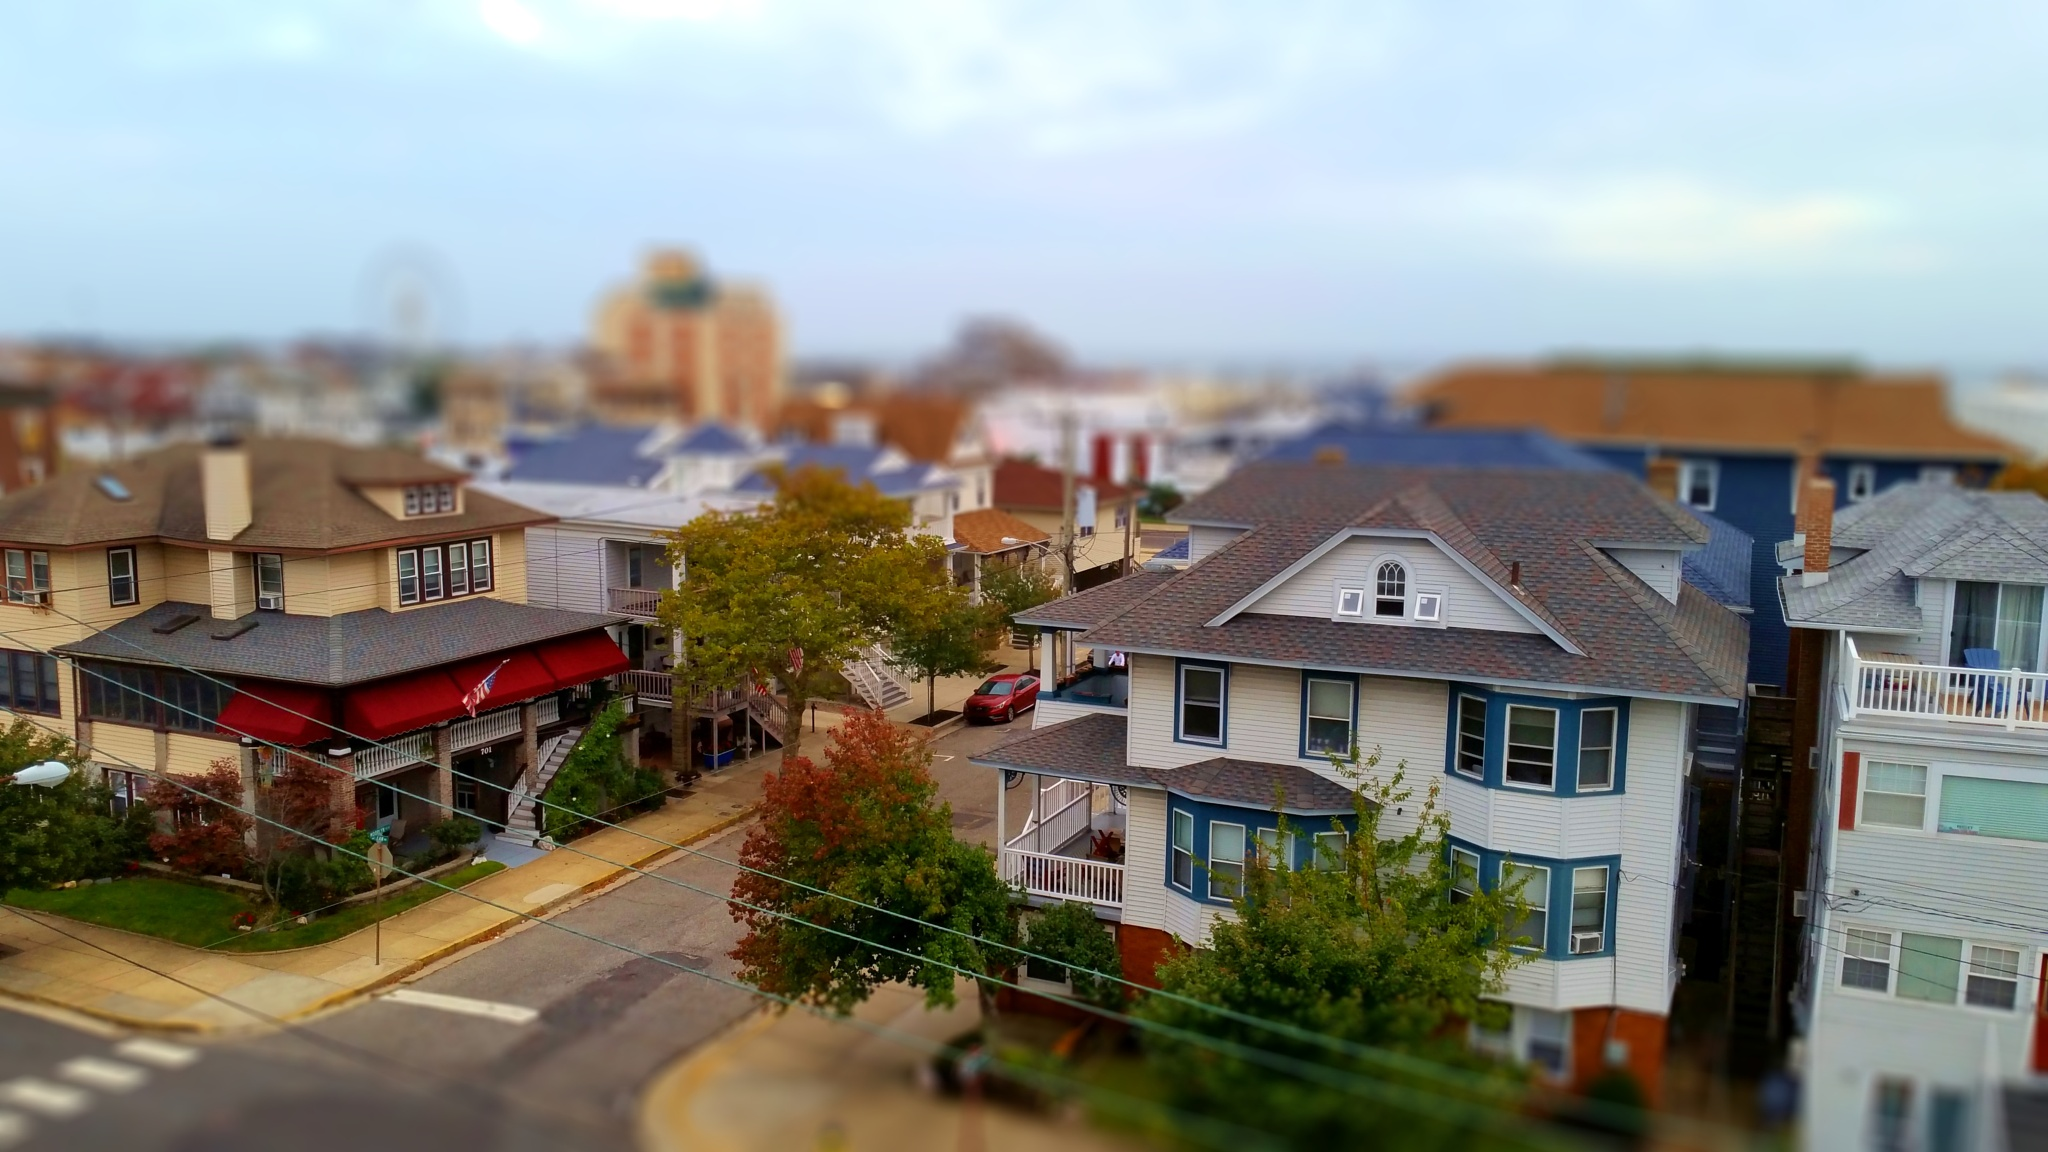 Ocean City Doll Houses by Doug Bottalico